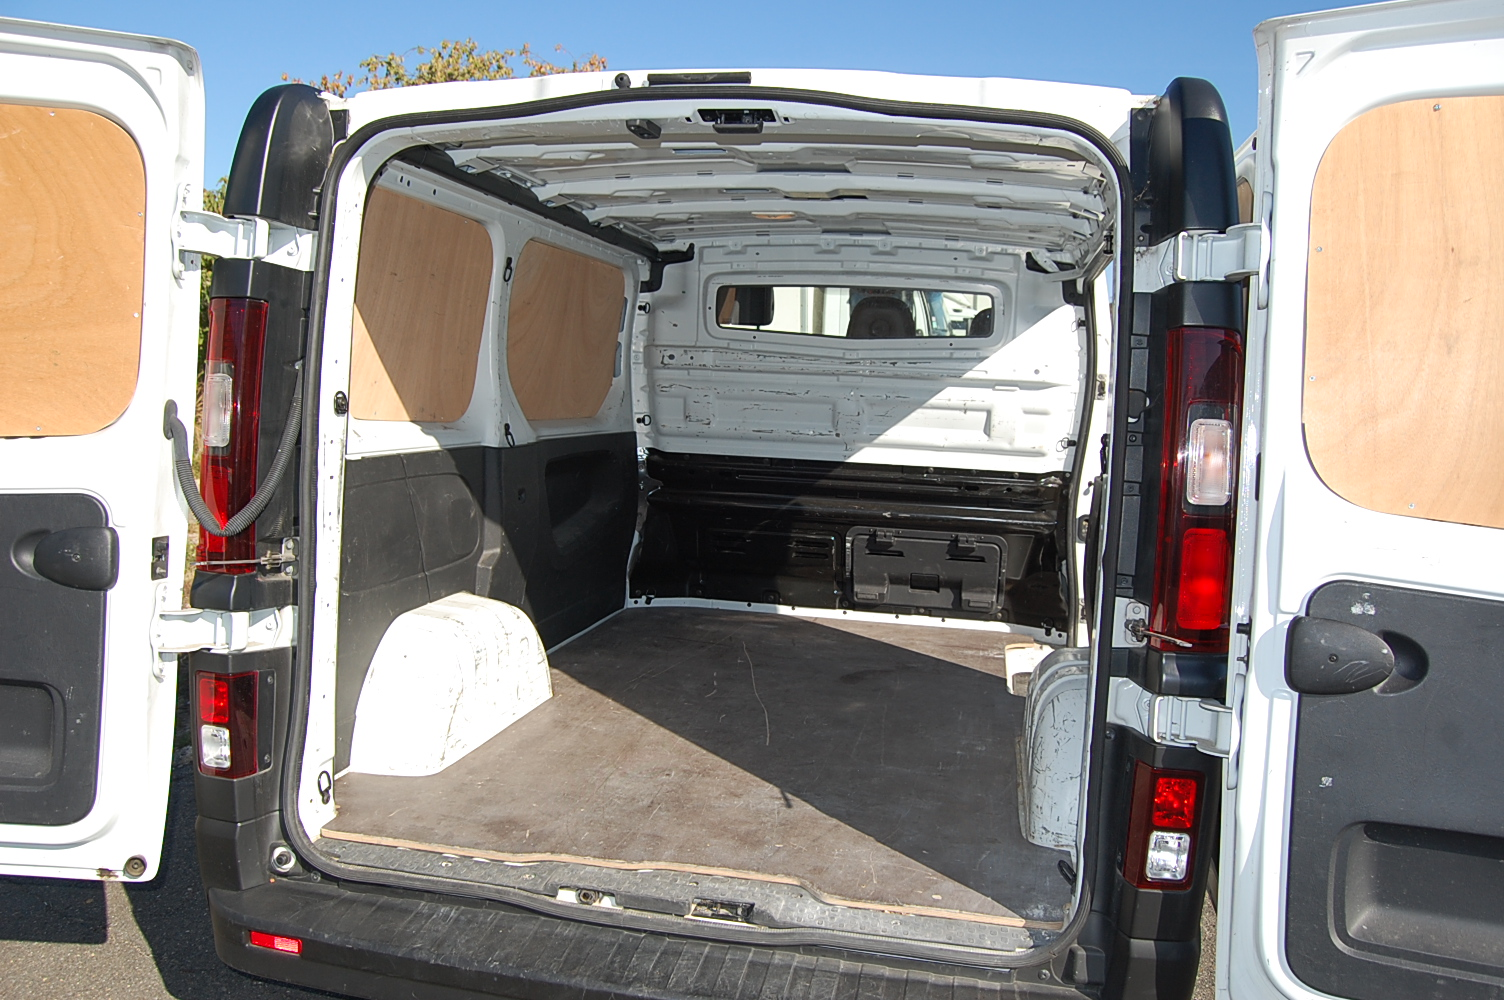 location d 39 un utilitaire 6m3 renault trafic locabest. Black Bedroom Furniture Sets. Home Design Ideas